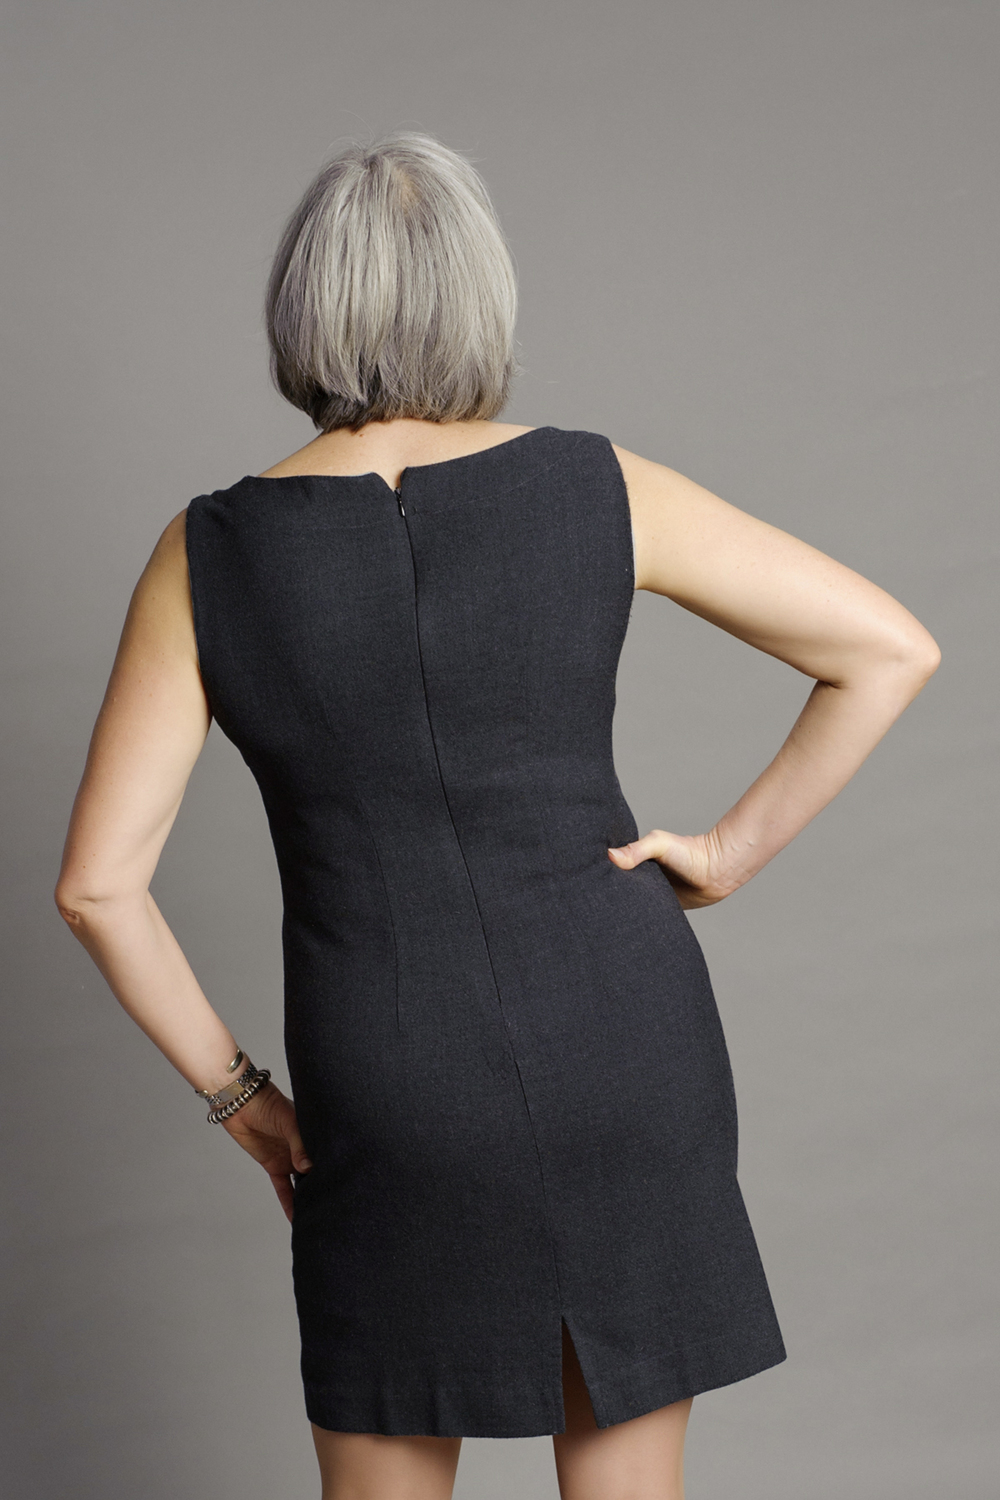 And the back. I will definitely be making this dress out of springier fabric soon. Photo by Andrea Jones.